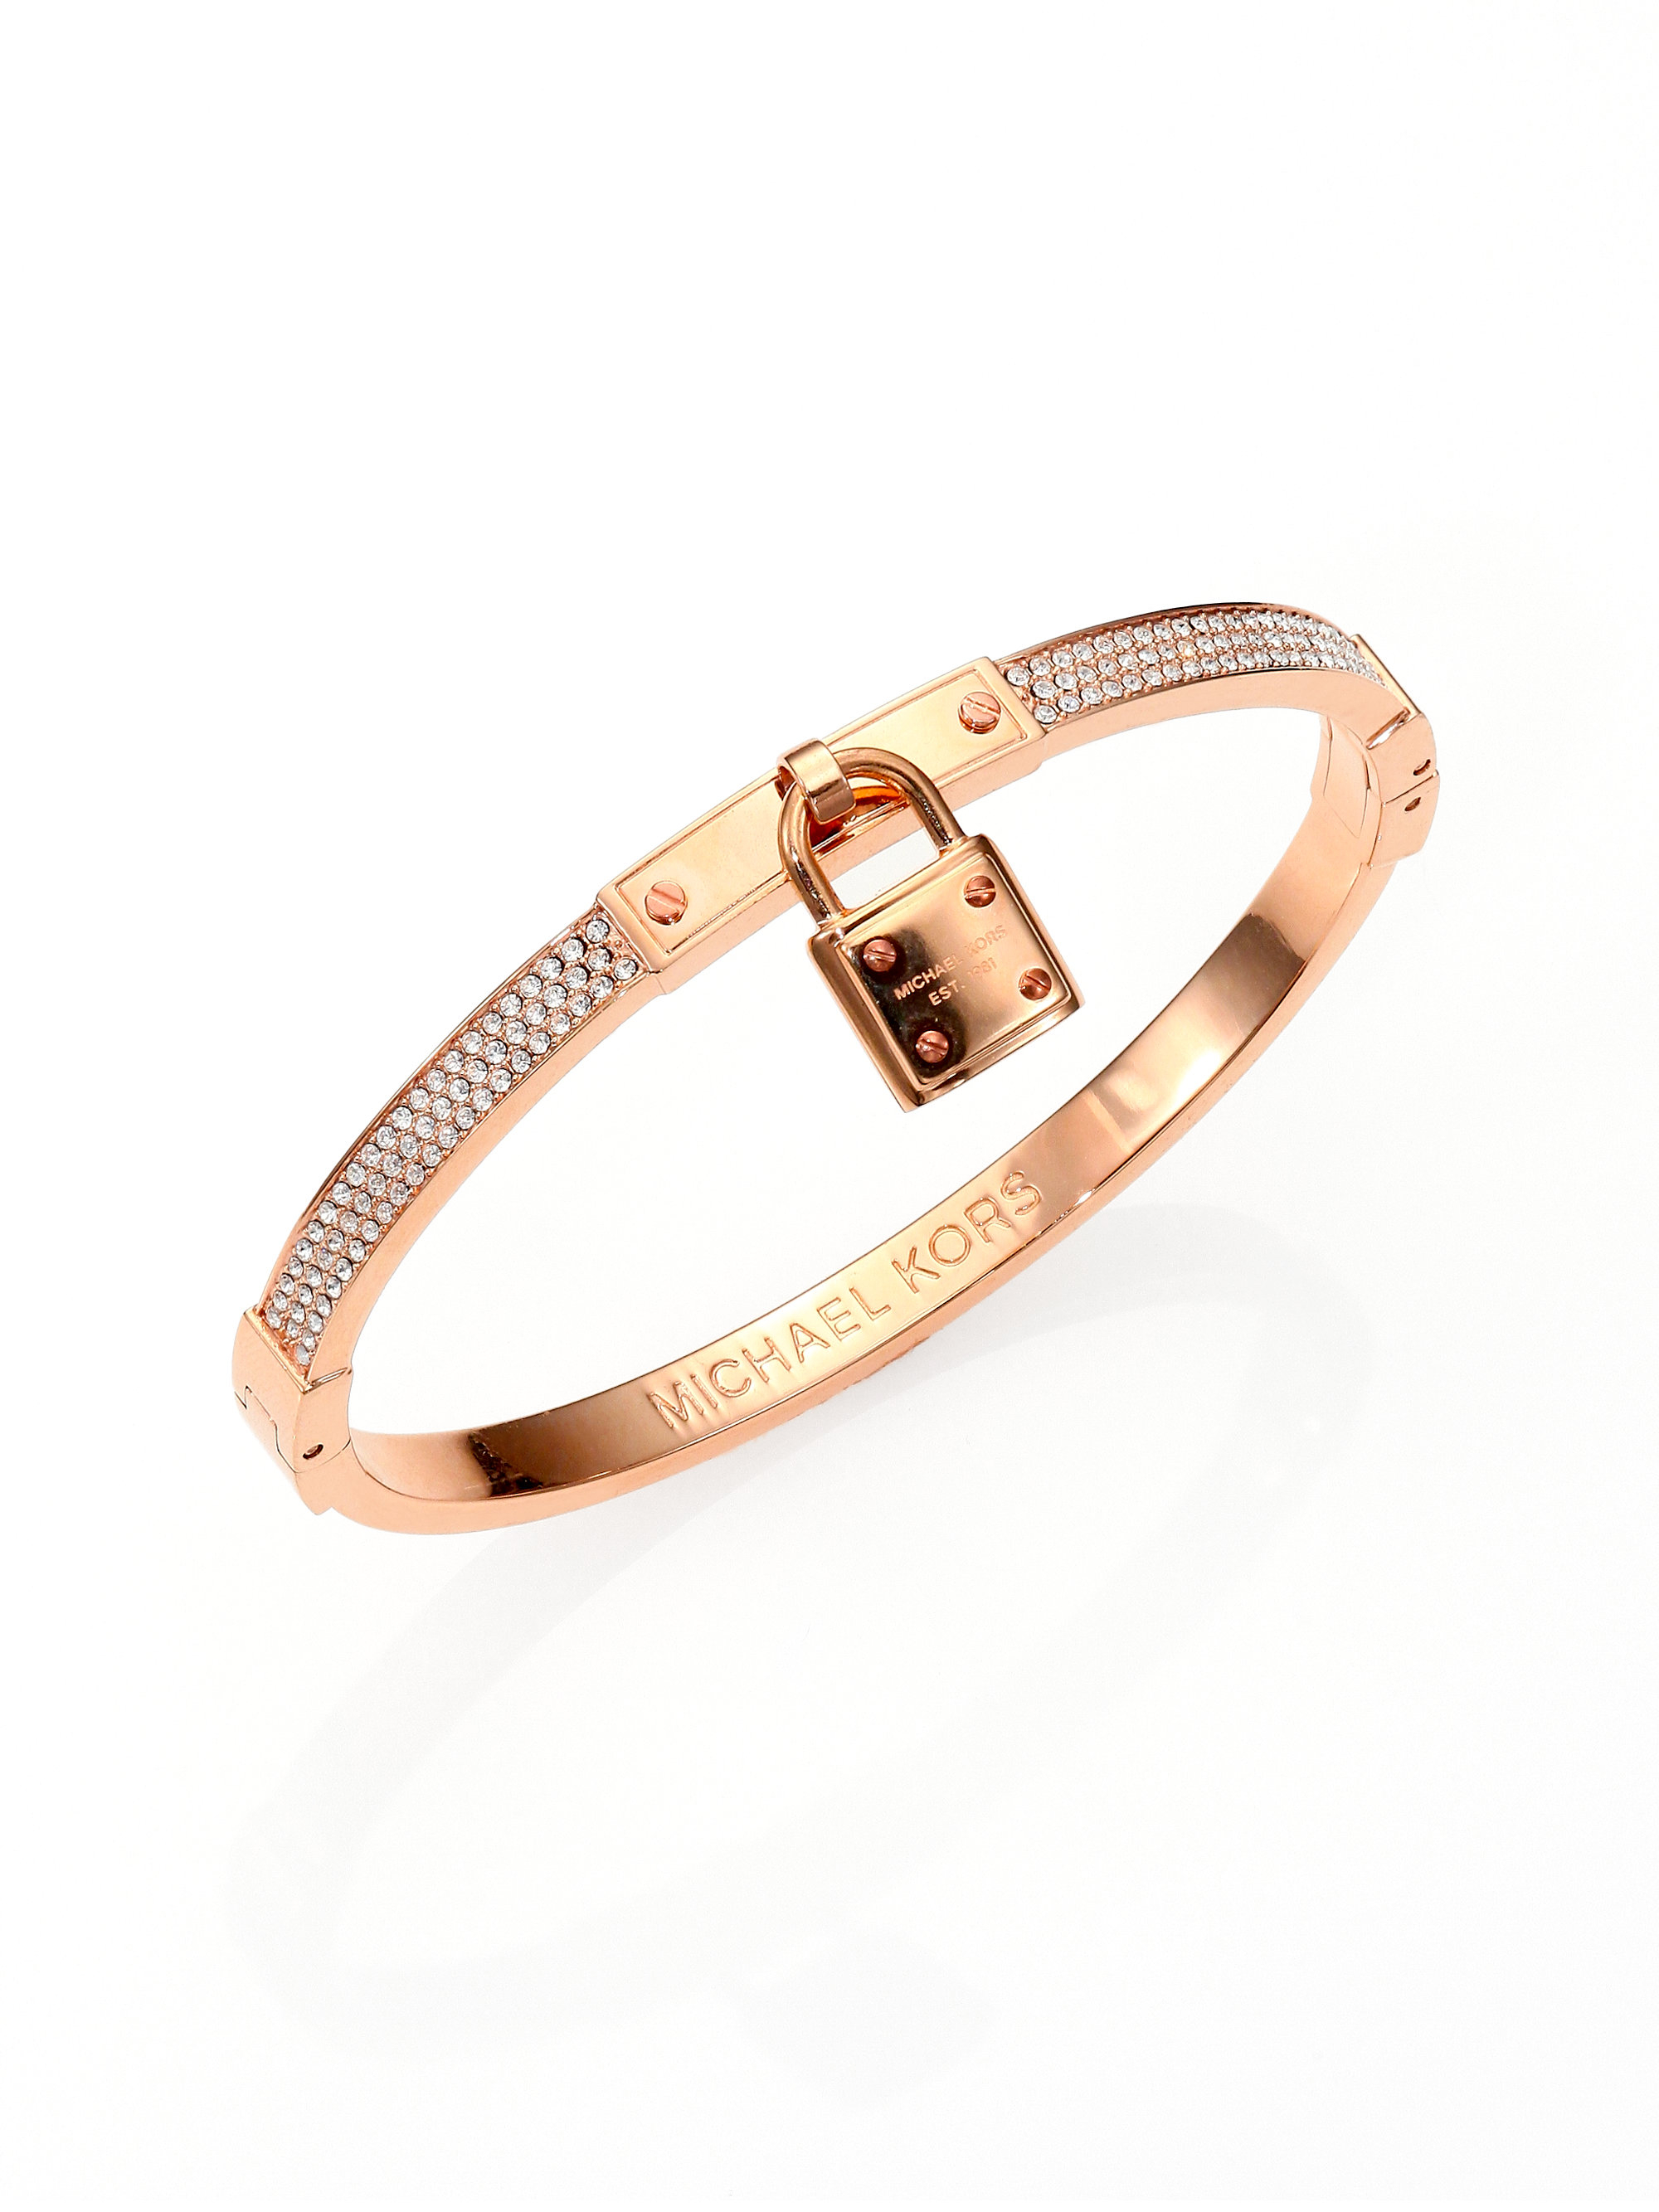 bangles bangle bracelets rose moganite fine gold bracelet product diamond jewelry